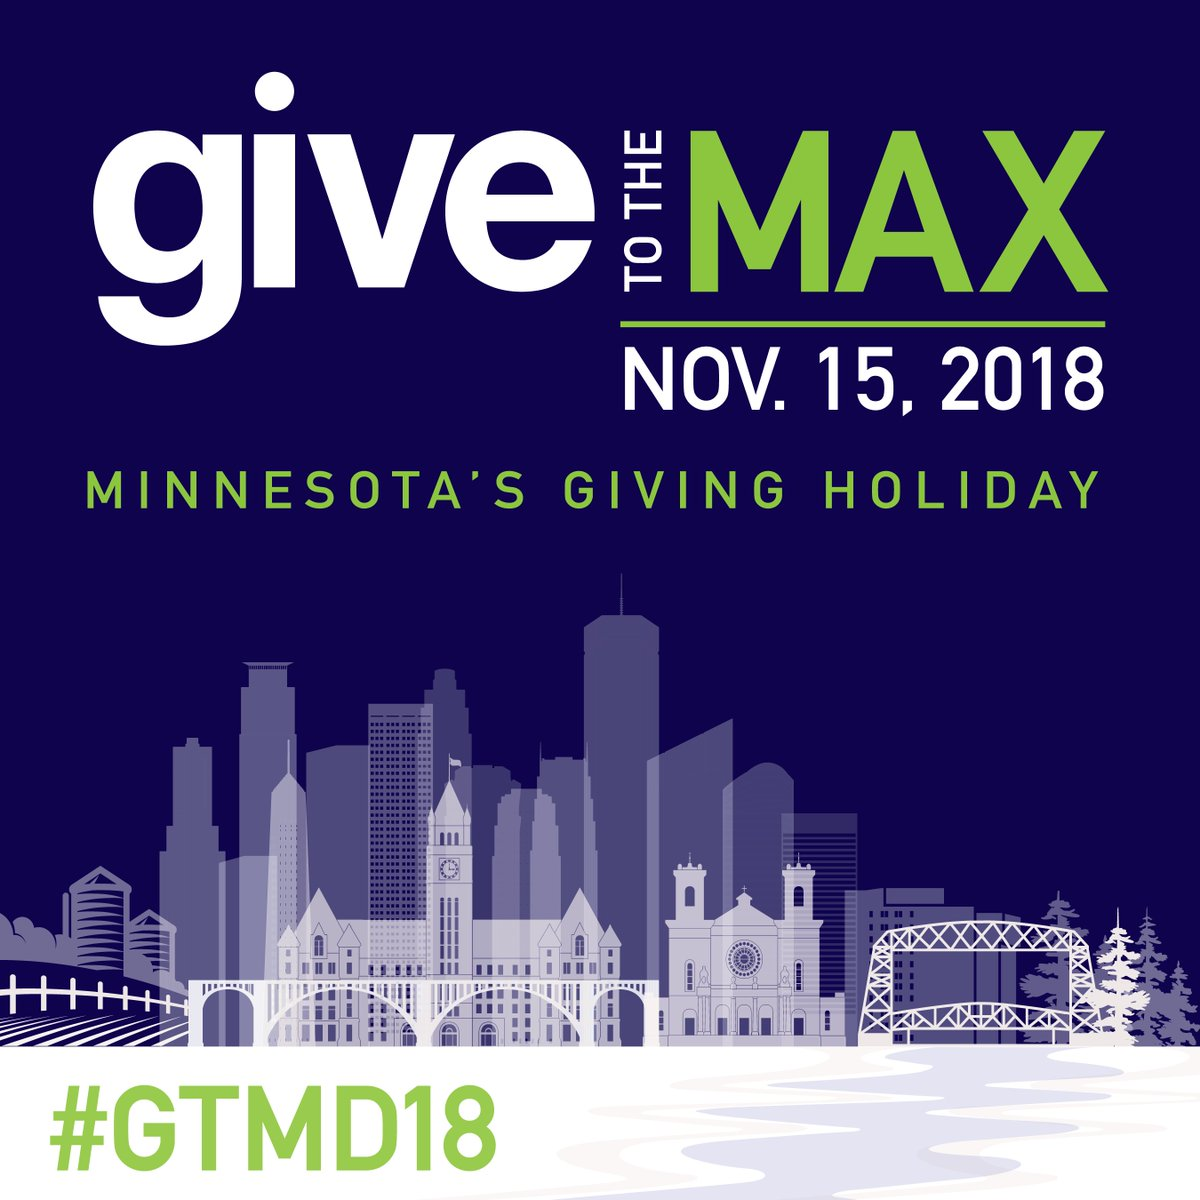 Help share the joy and warmth of the season by giving the gift of hearing to someone in need. http://bit.ly/GTMD-SHF #GTMD18pic.twitter.com/jwVkRIijzG